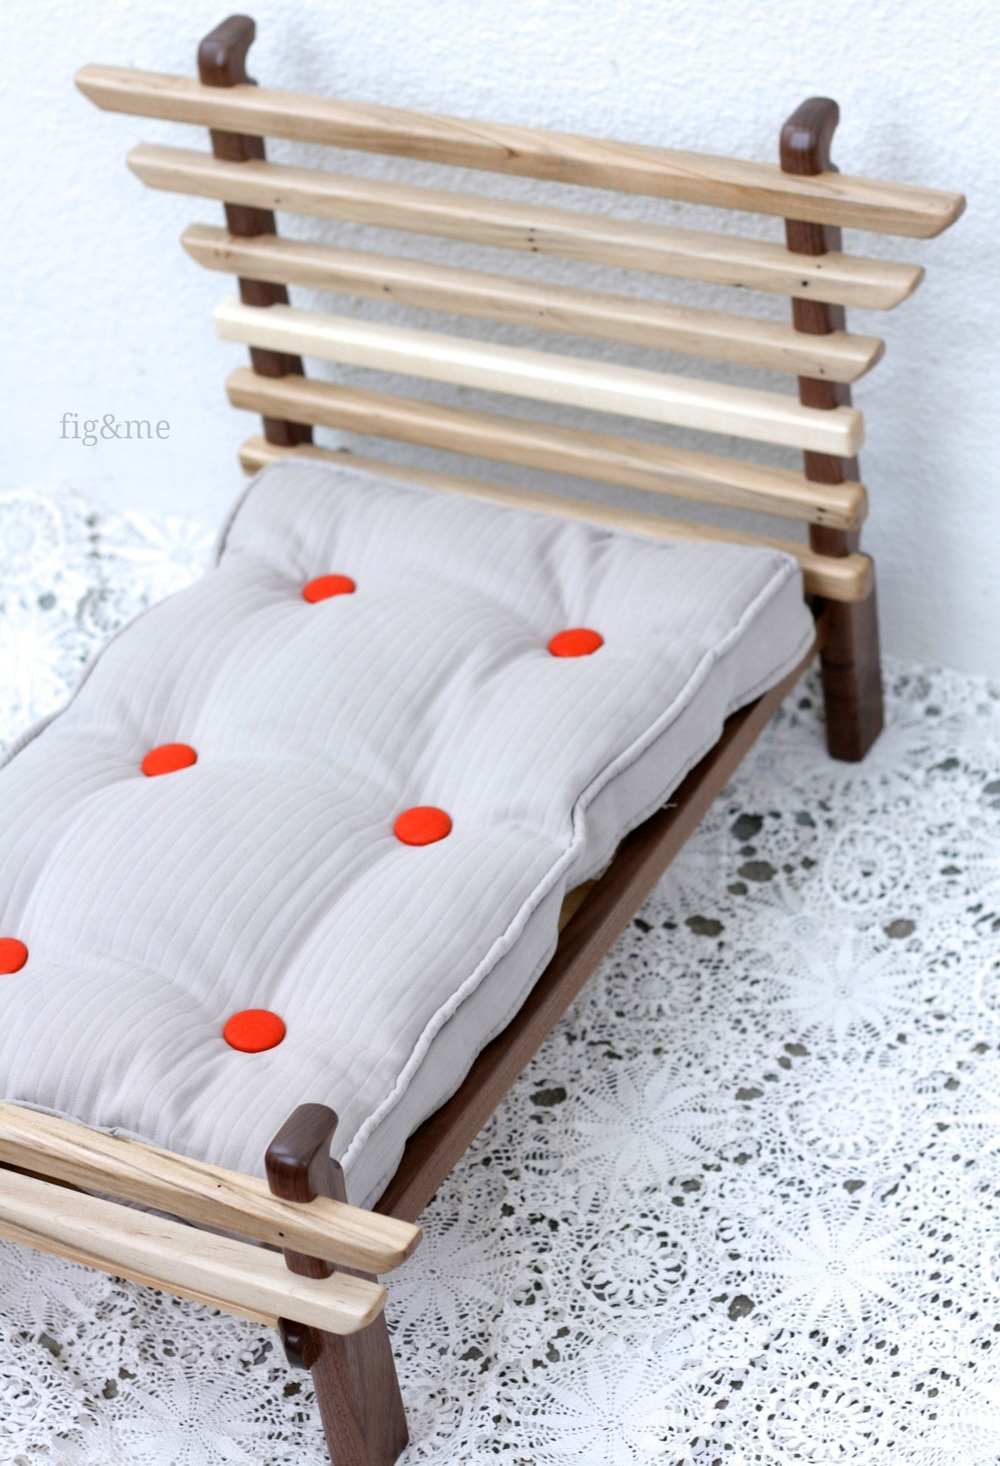 Tufted and piped doll mattress, by Fig&me